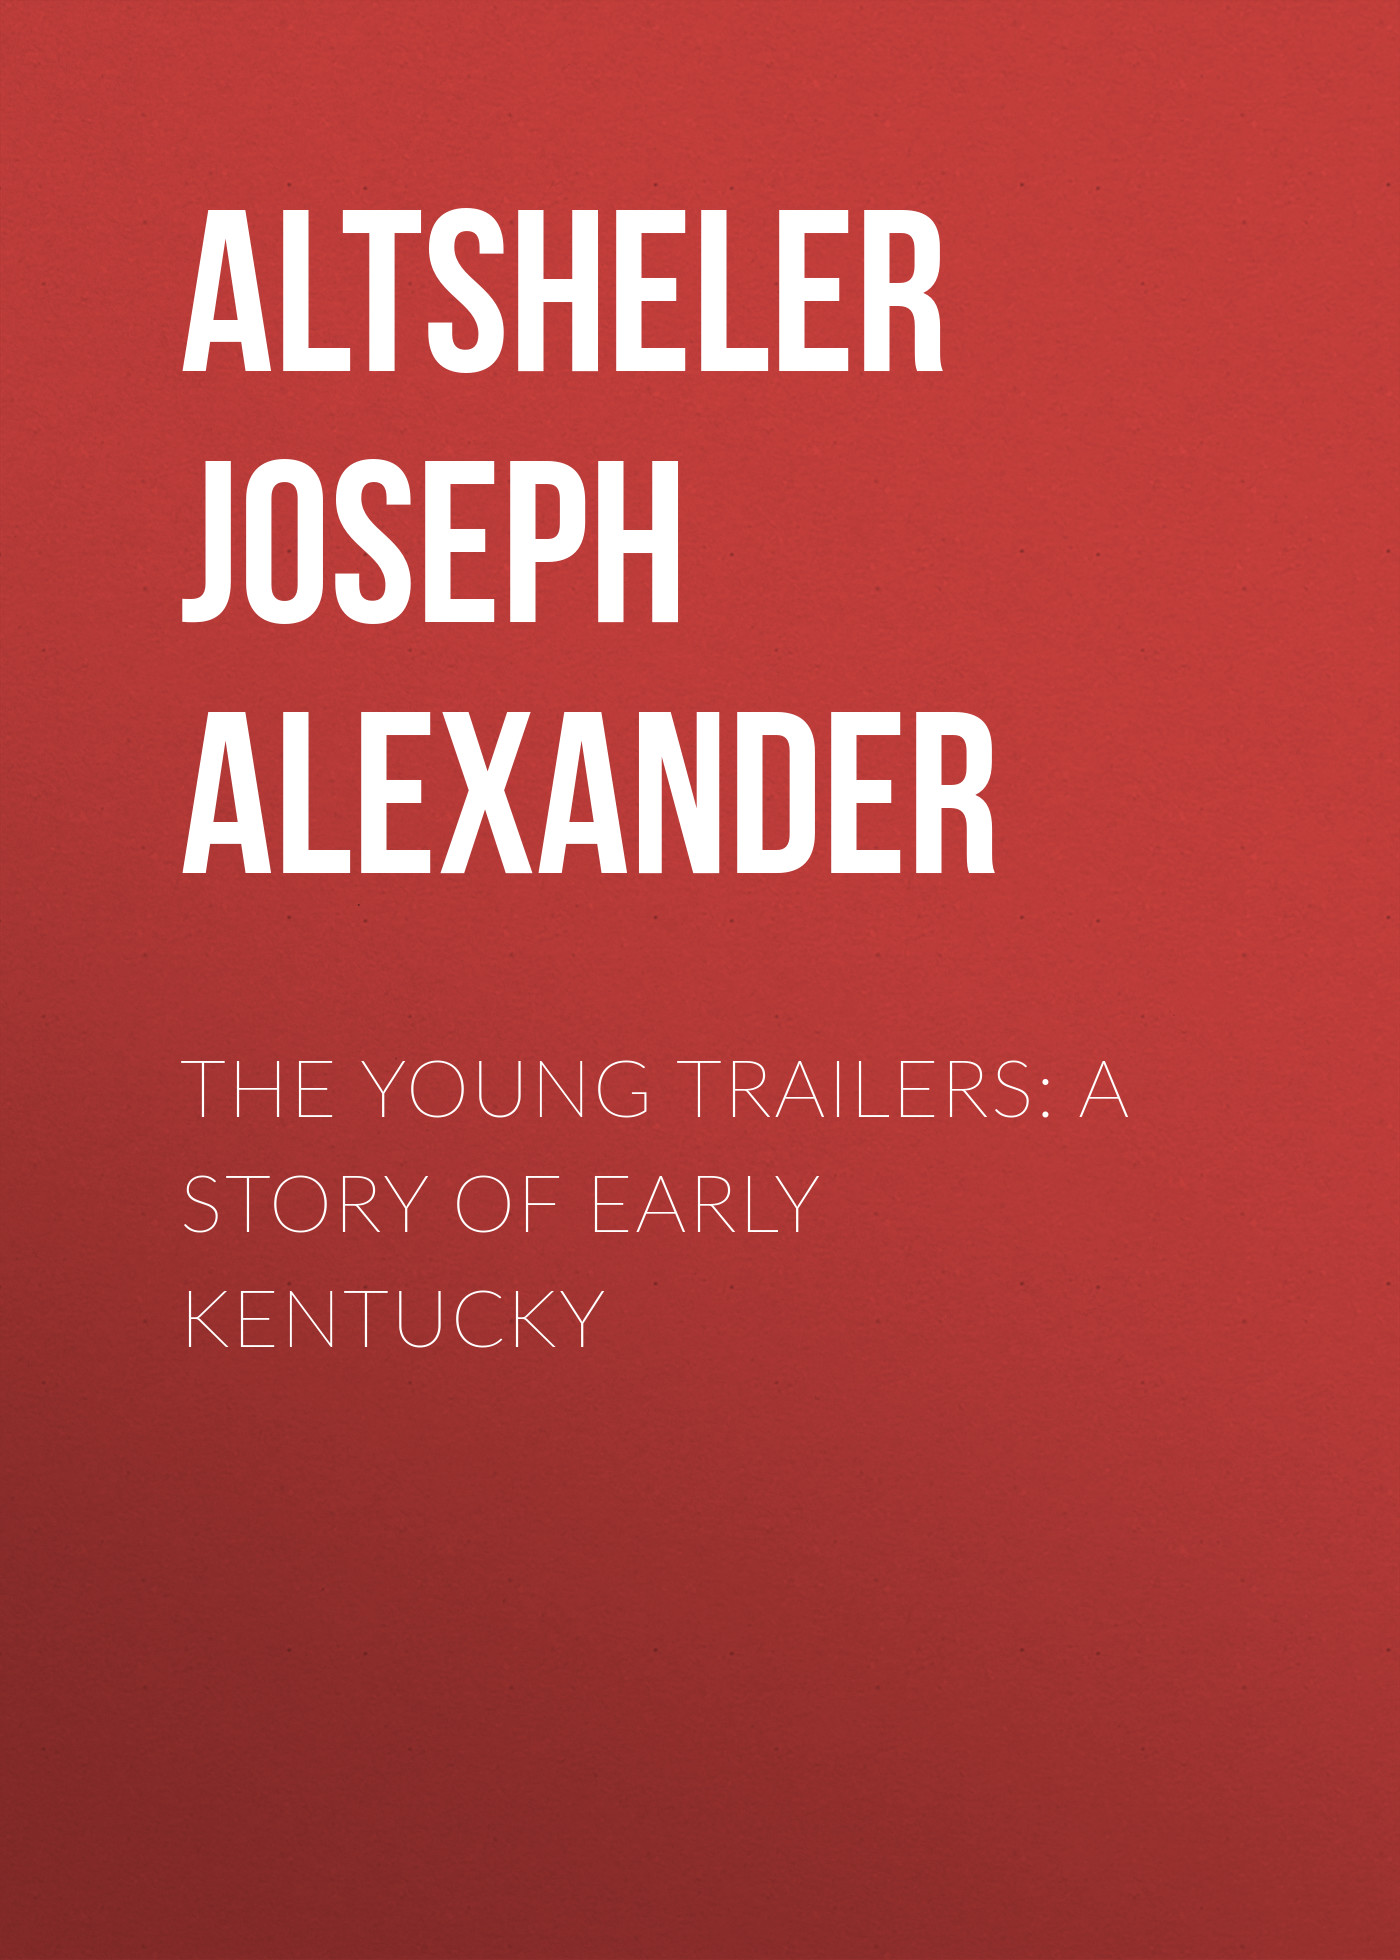 Altsheler Joseph Alexander The Young Trailers: A Story of Early Kentucky altsheler joseph alexander the free rangers a story of the early days along the mississippi